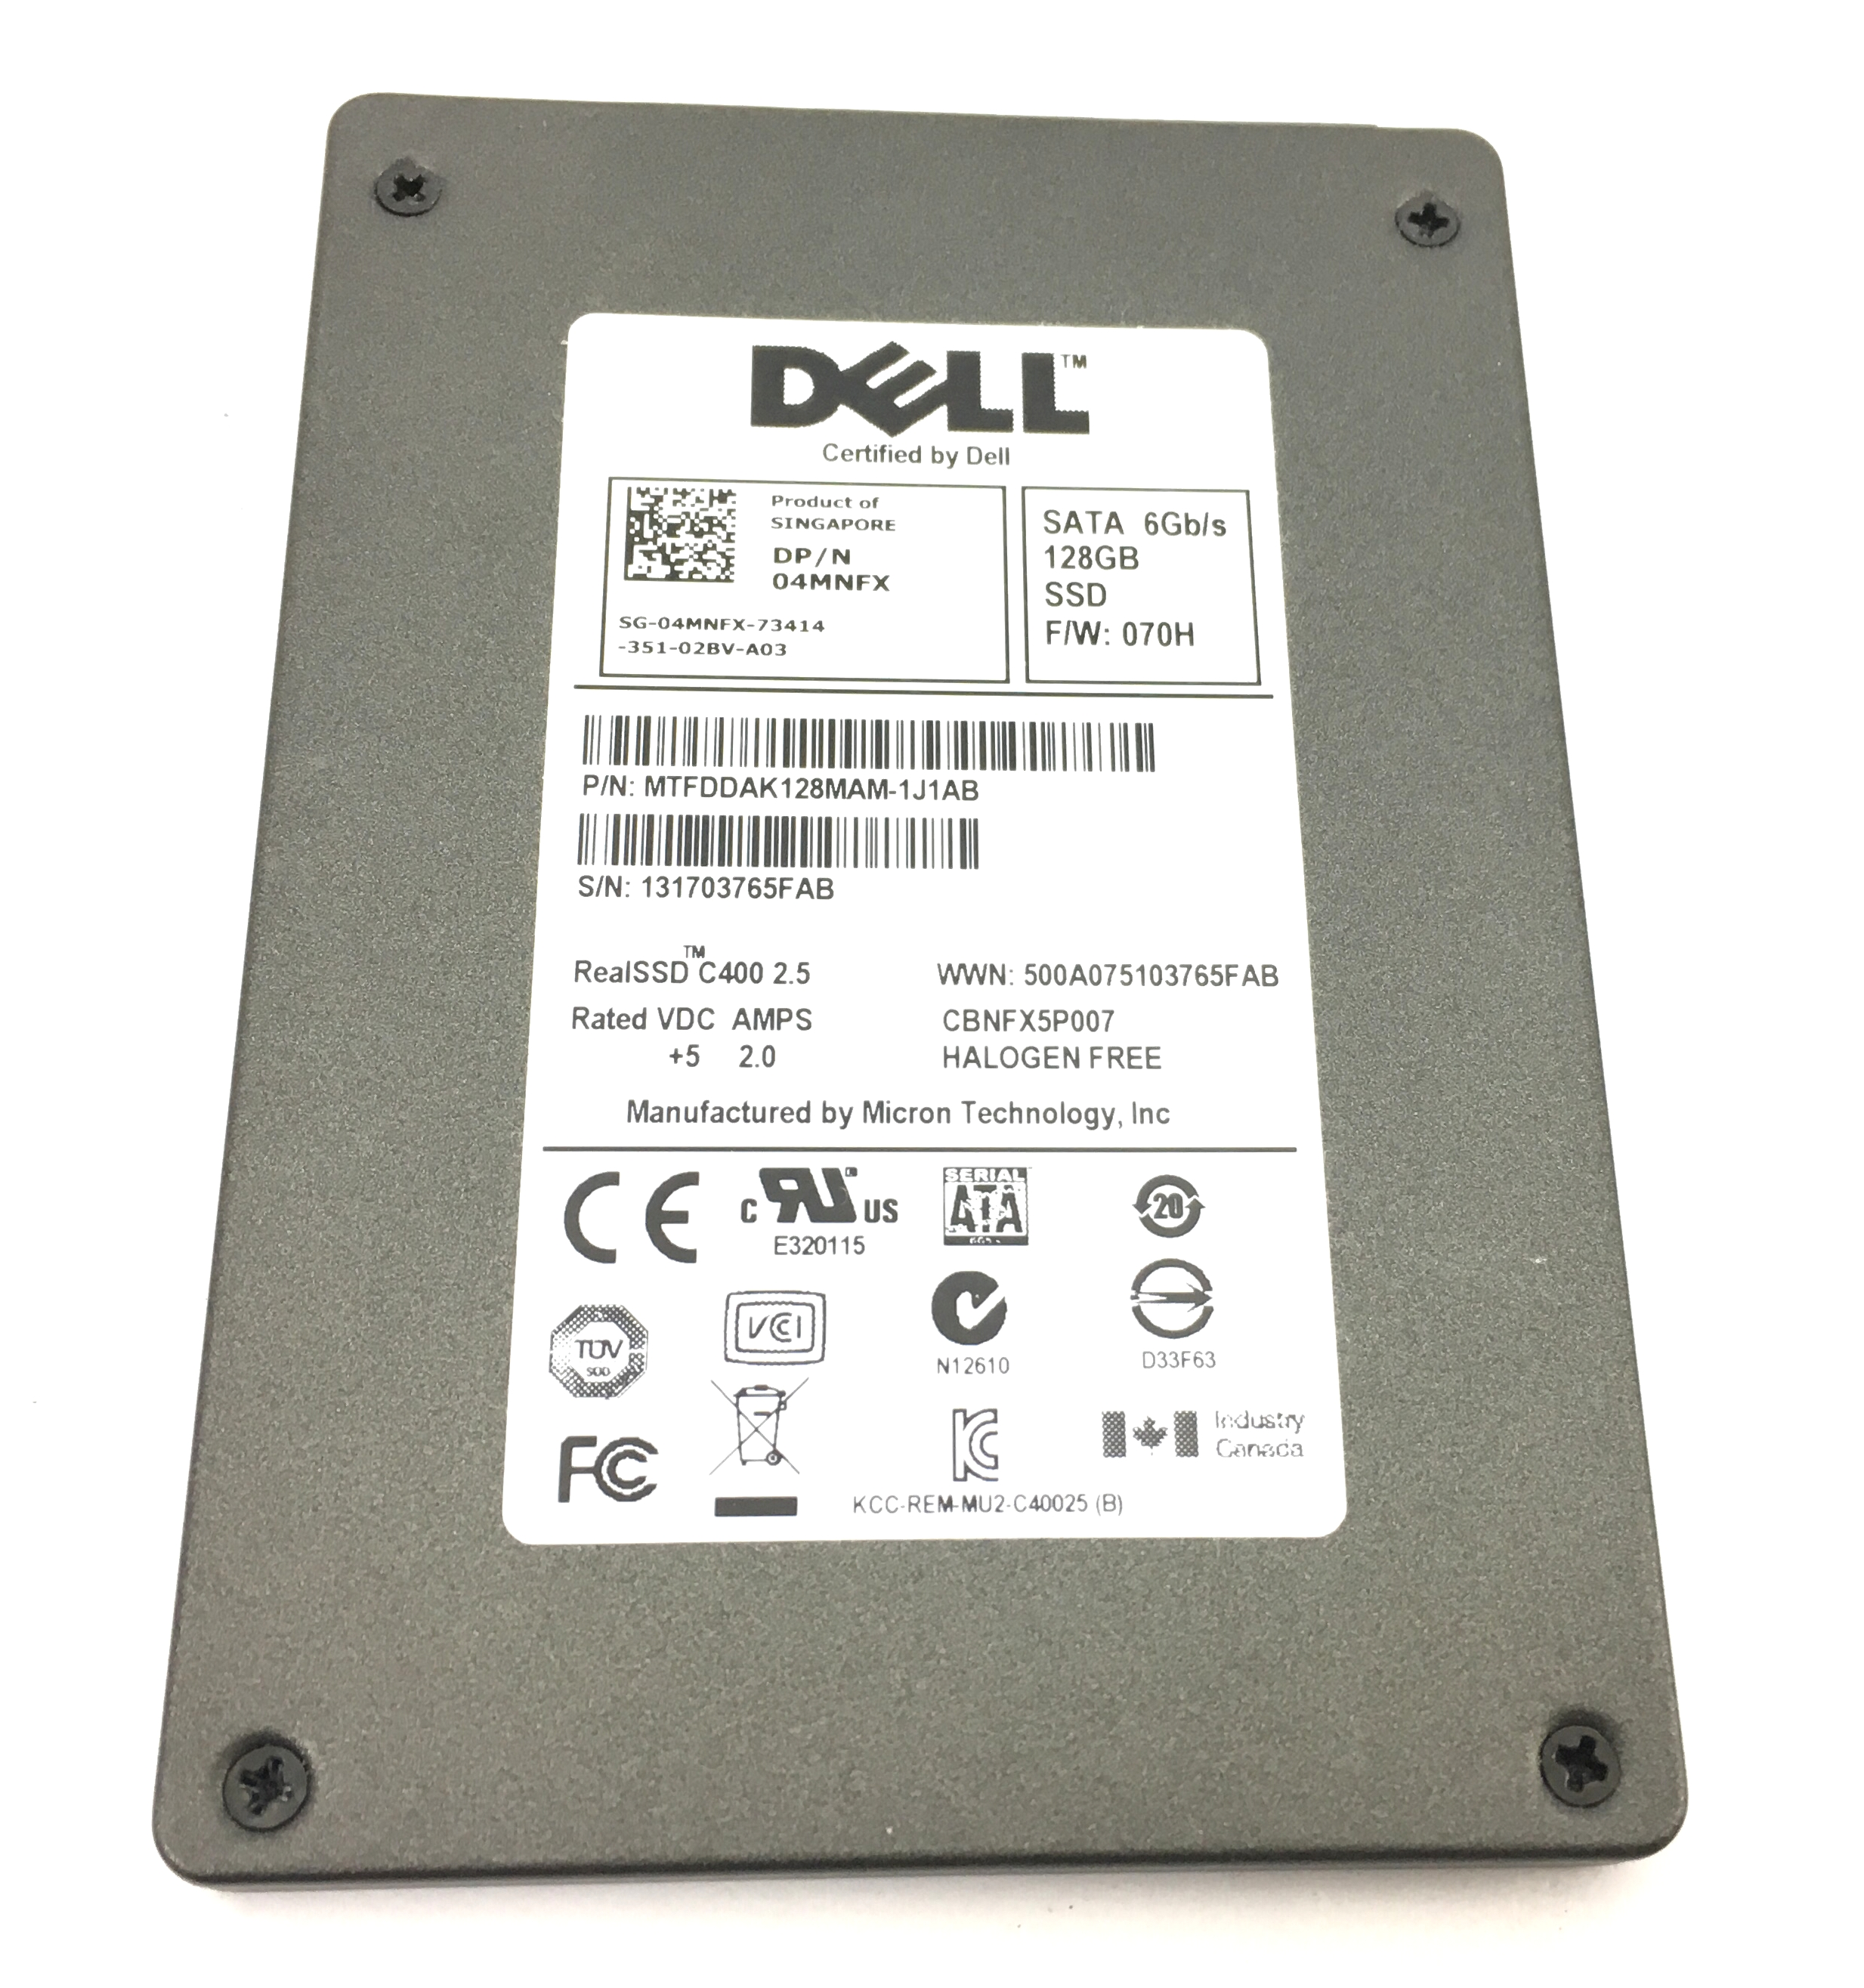 Dell Real SSD C400 128GB 6Gbps SATA 2.5'' Solid State Drive (4MNFX)